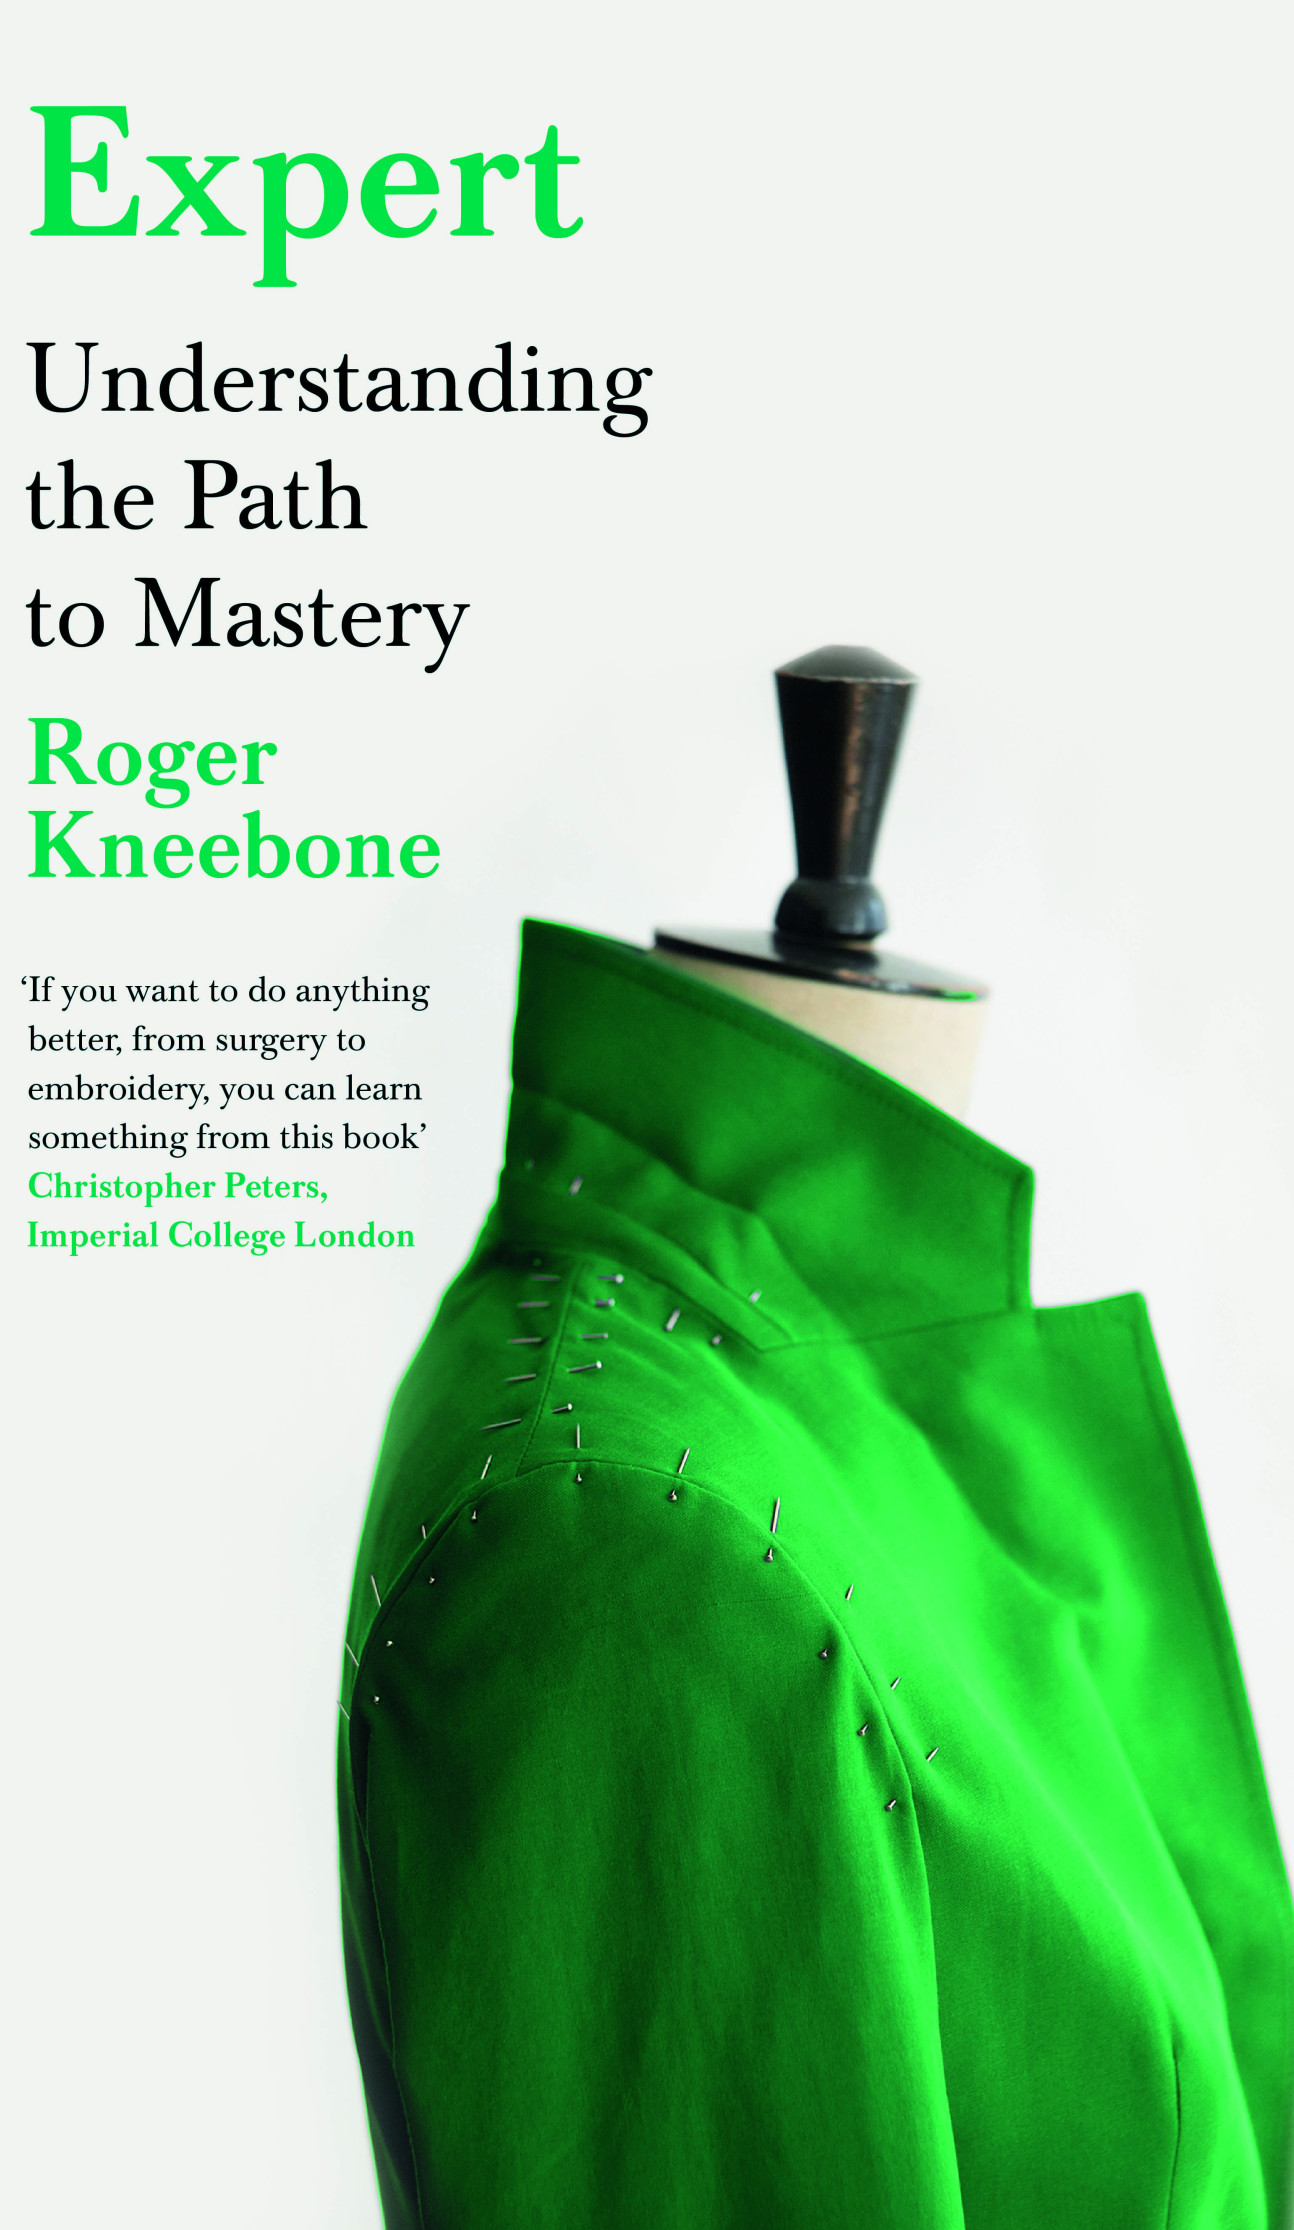 The front cover of Expert by Roger Kneebone